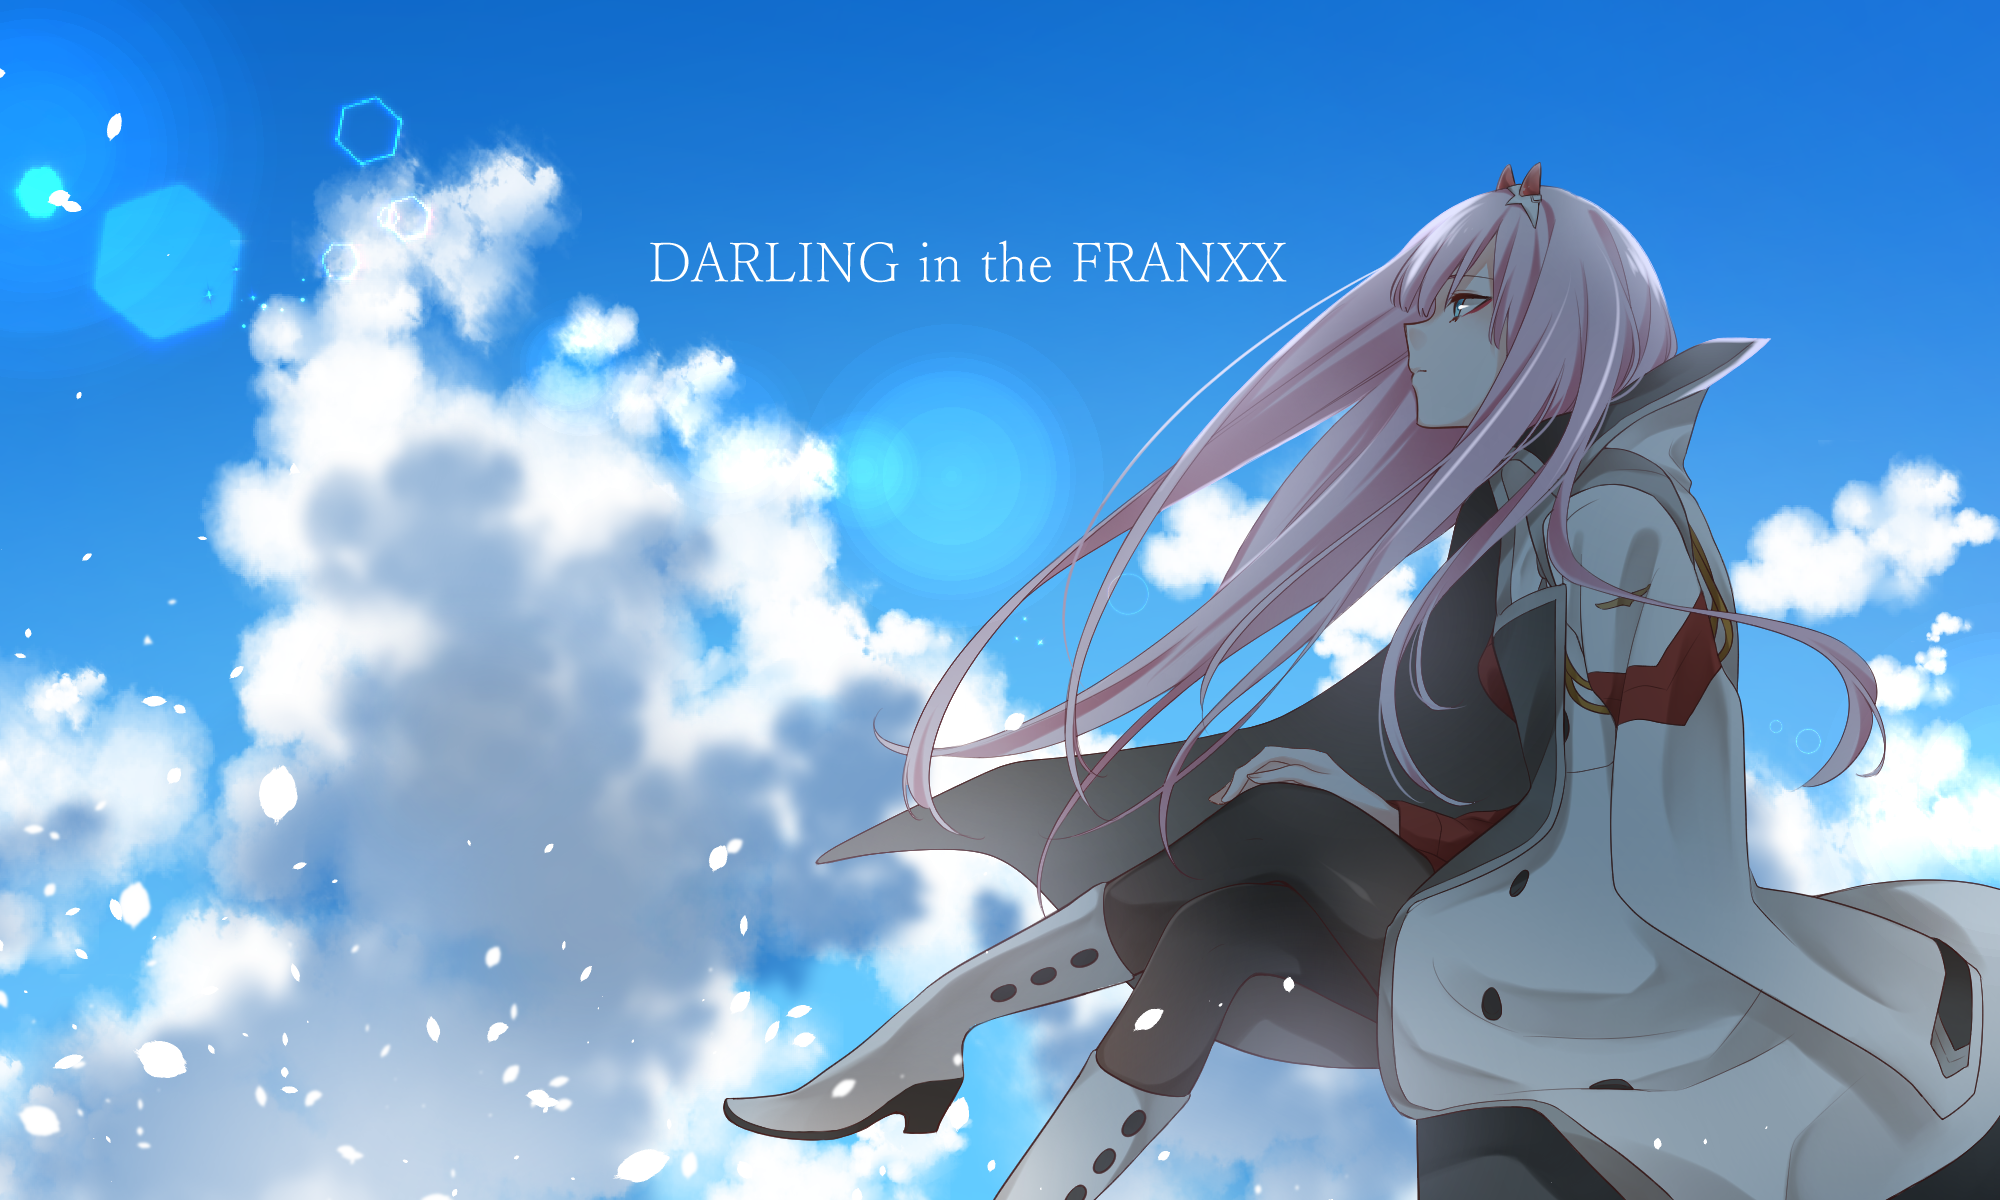 darling in the franxx wallpaper